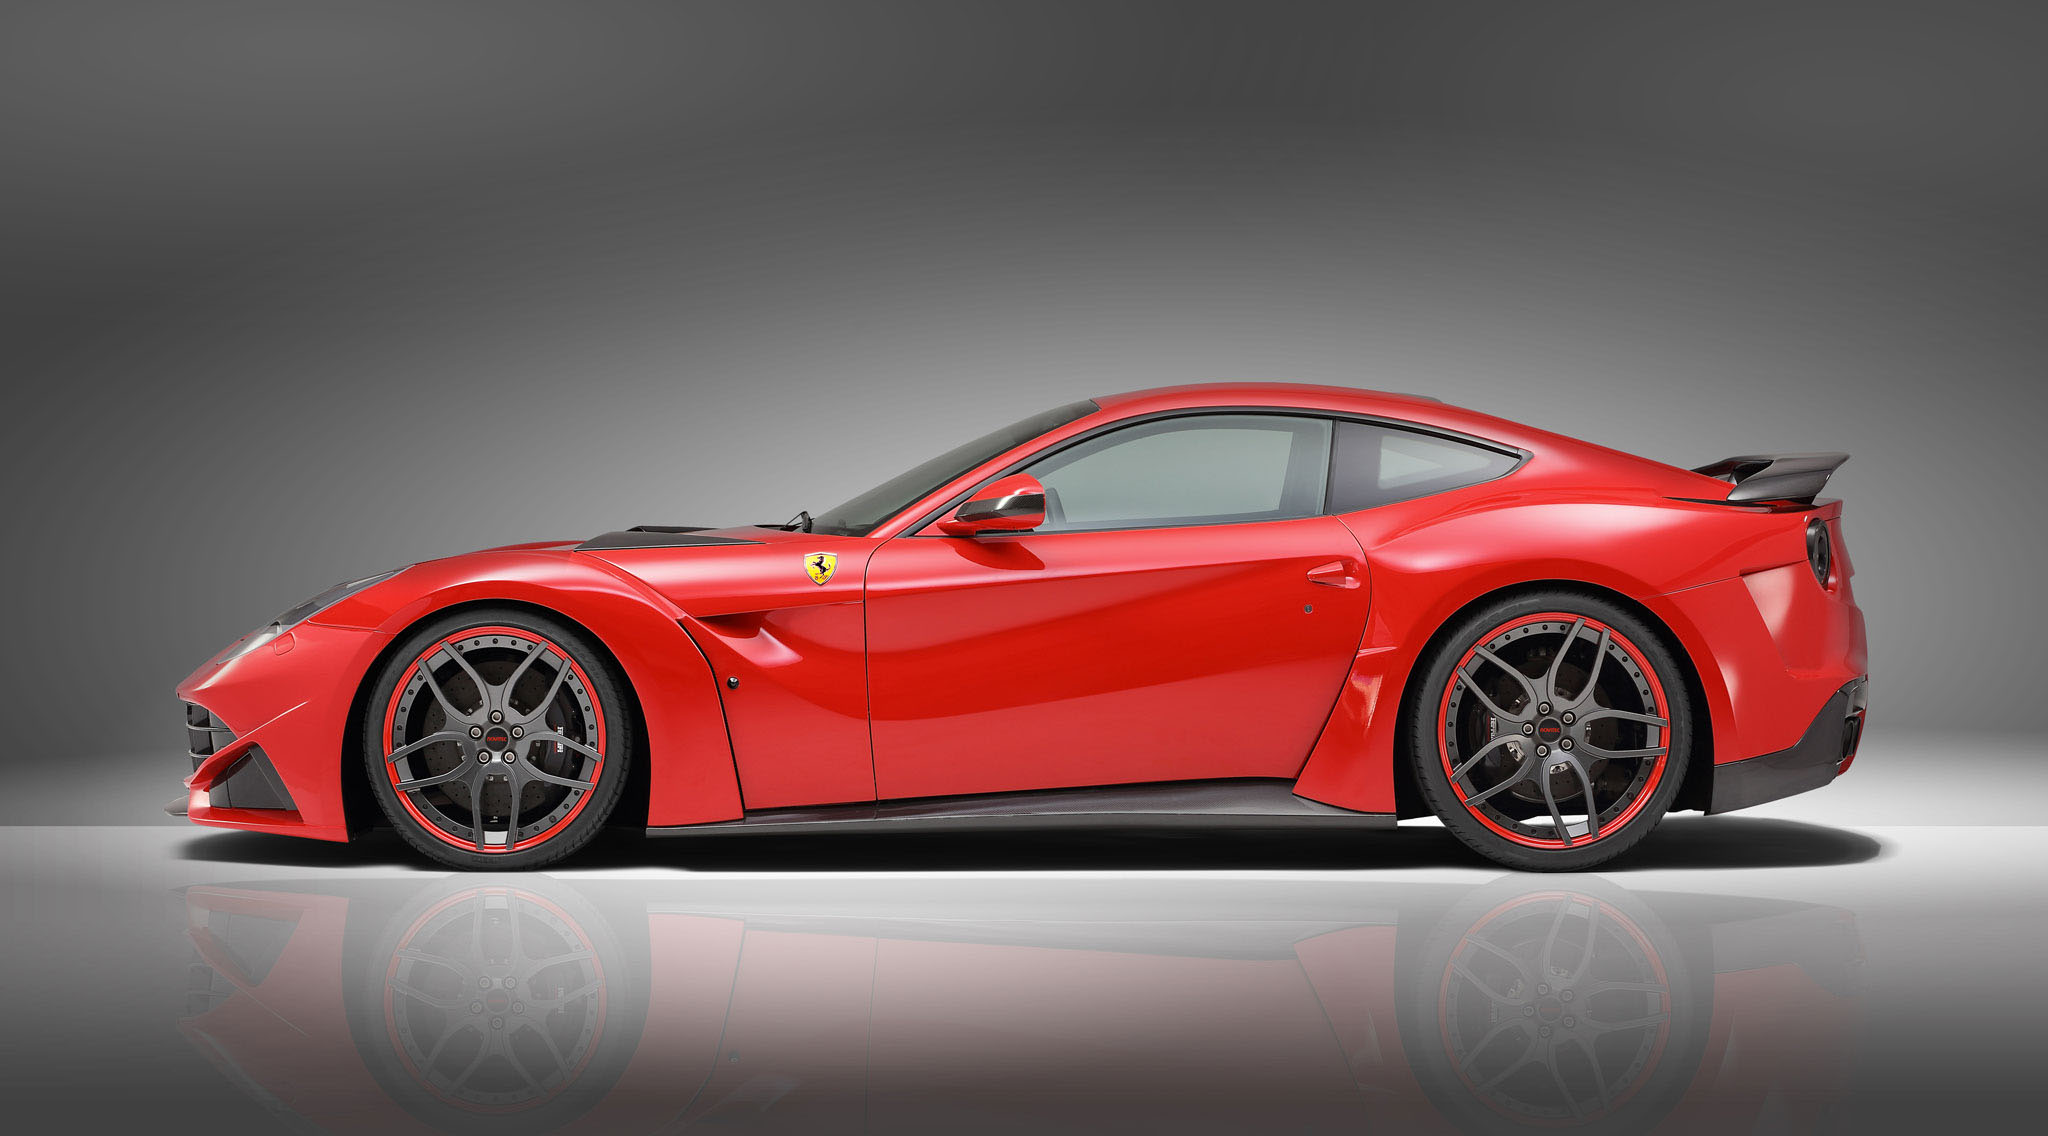 ferrari f12 berlinetta hd wallpapers high resolution download. Black Bedroom Furniture Sets. Home Design Ideas